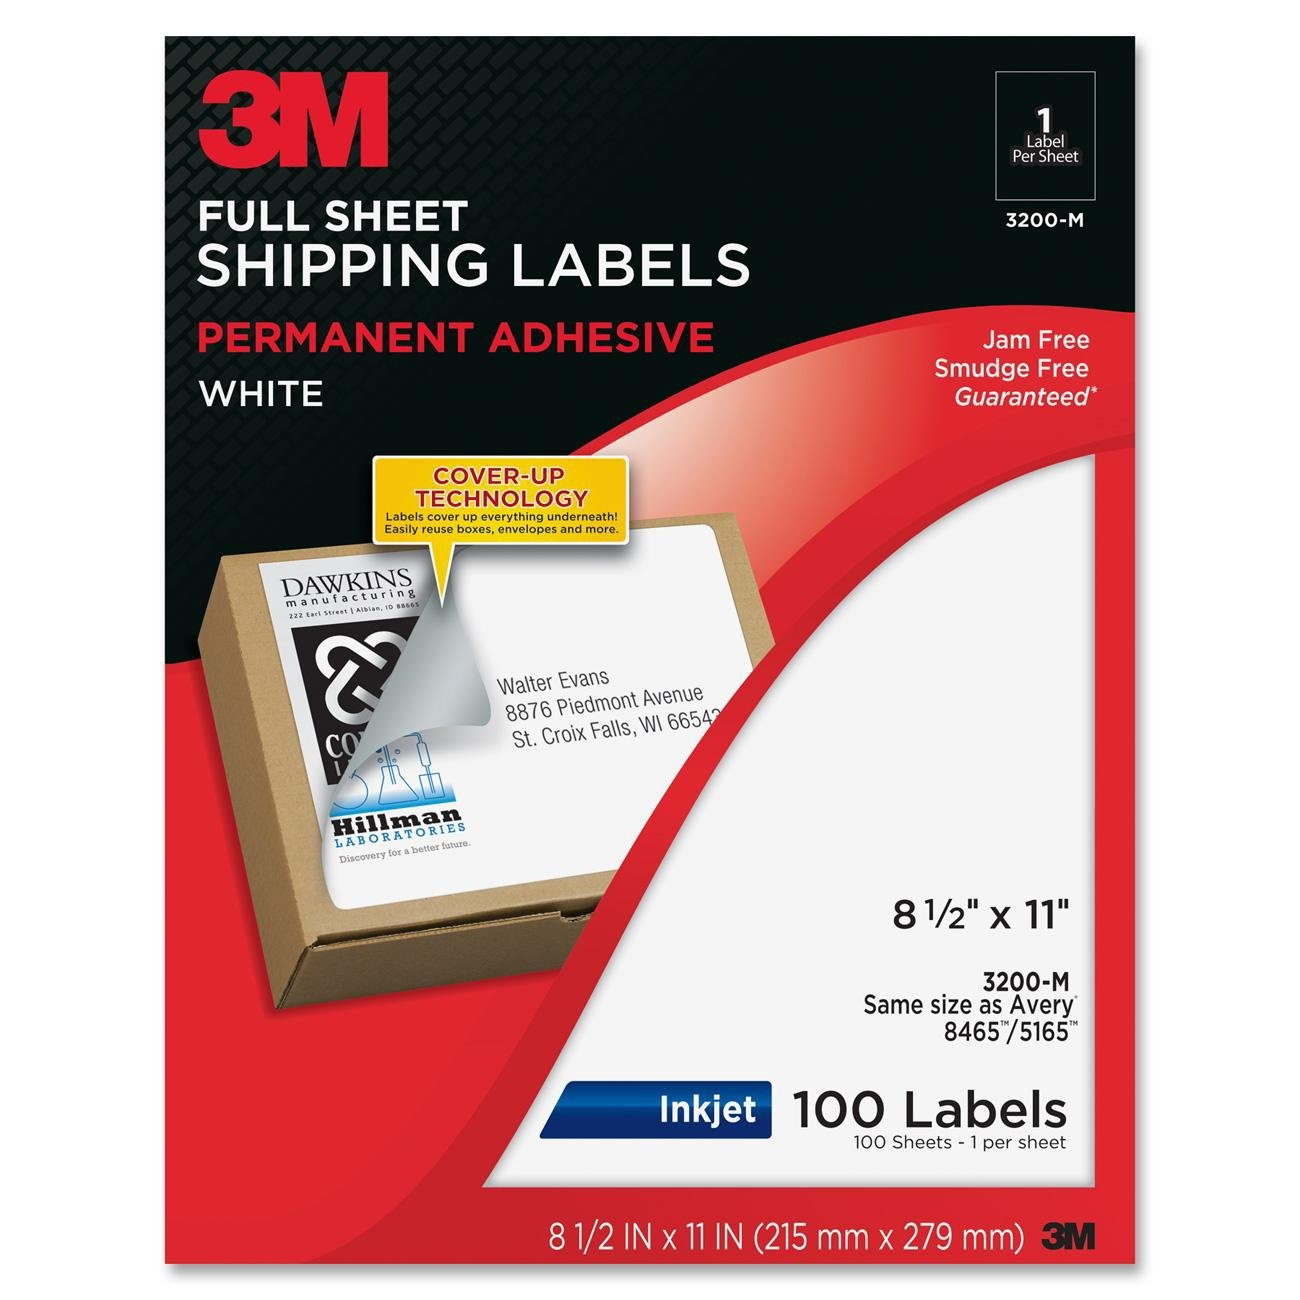 3M Full Sheet Shipping Labels with Cover-Up Technology, 8-1/2 x 11 Inches, White, 100 Sheets/Pack (3200-M)